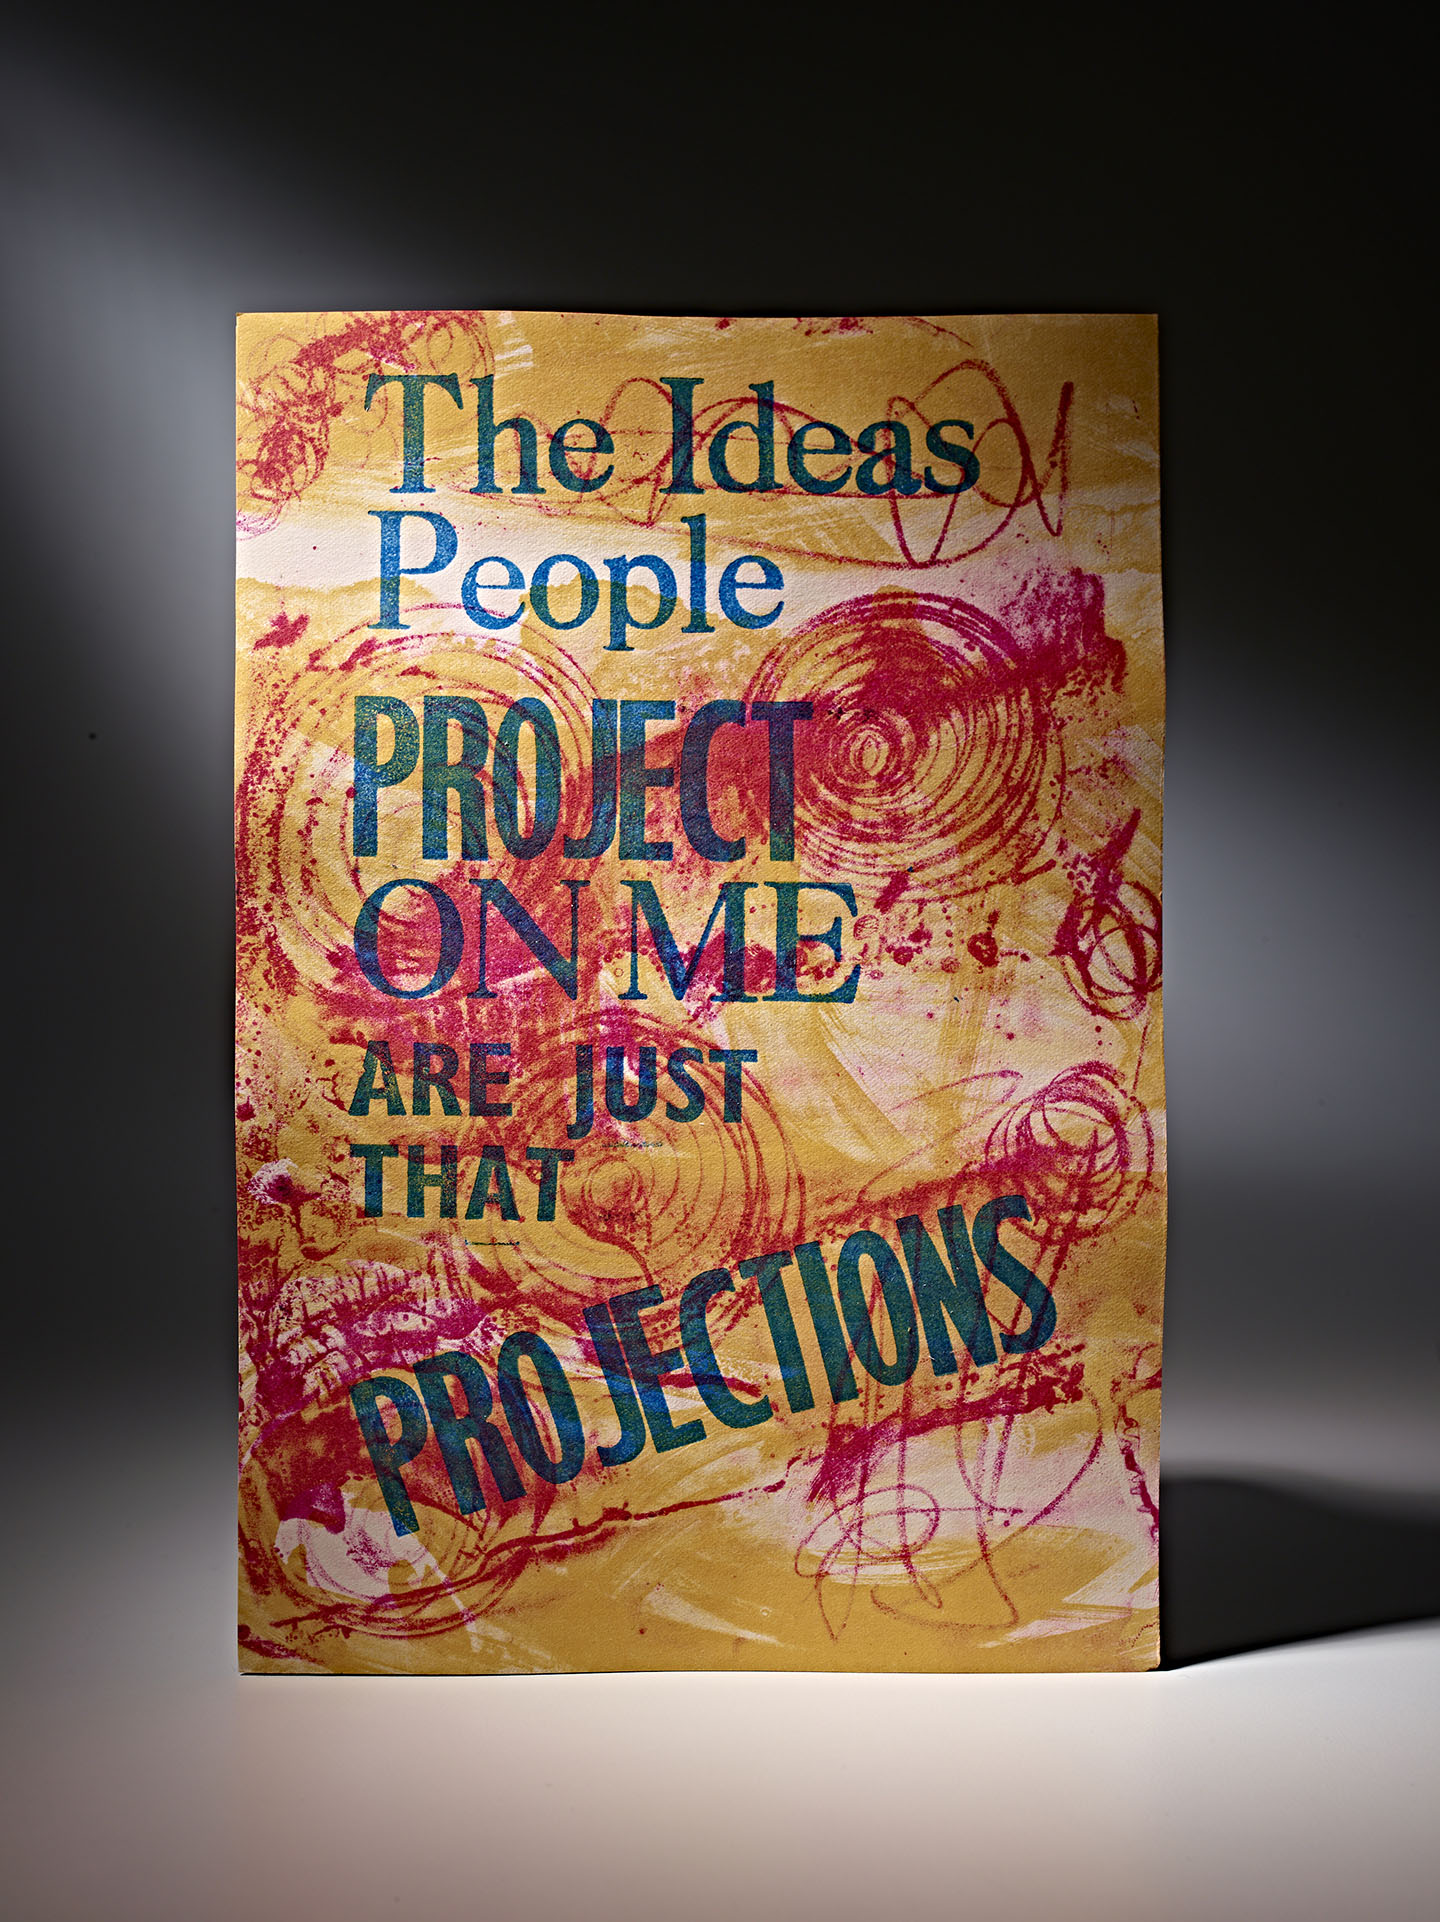 Easton-Ideas-are-projections-1440px-wide-3